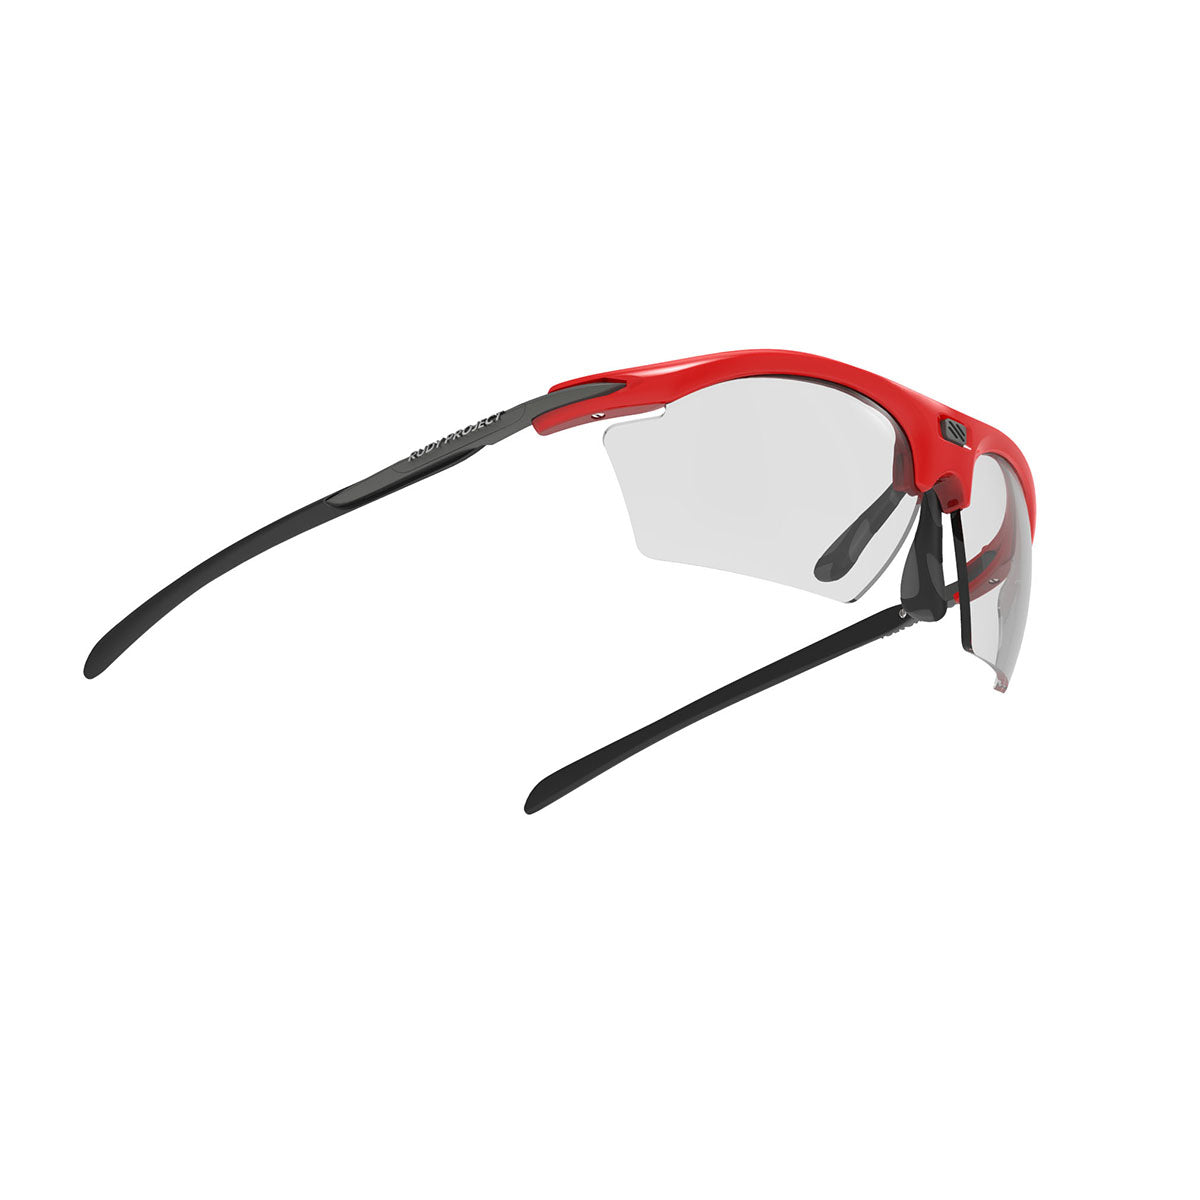 Rudy Project - Rydon Slim  - frame color: Fire Red Gloss - lens color: ImpactX-2 Photochromic Clear to Black - photo angle: Bottom Front Angle Variant Hover Image